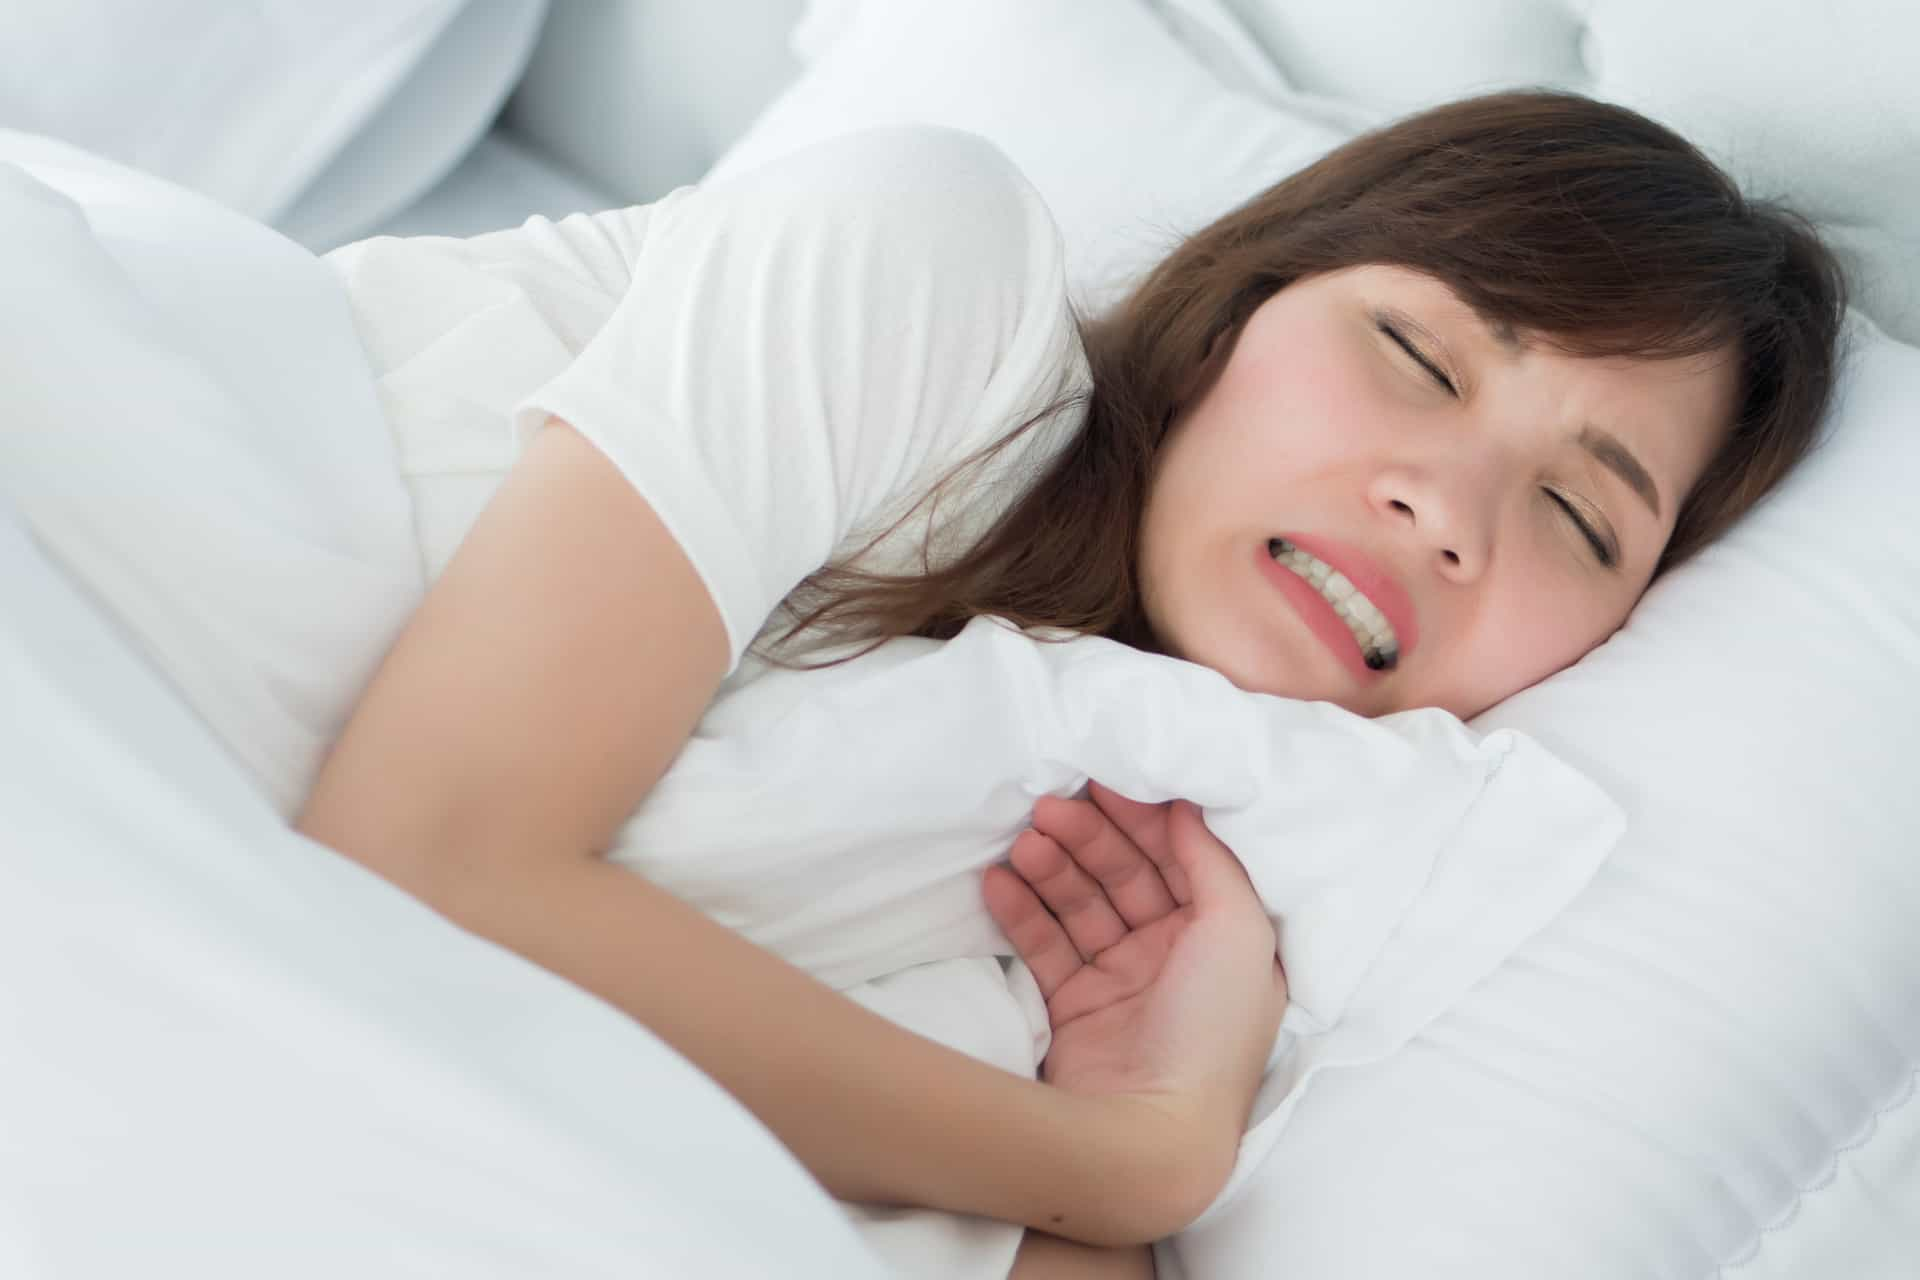 Whether you're doing it at night while you're sleeping or during waking hours, grinding teeth isn't good for you. Here's a look at how to stop grinding teeth.